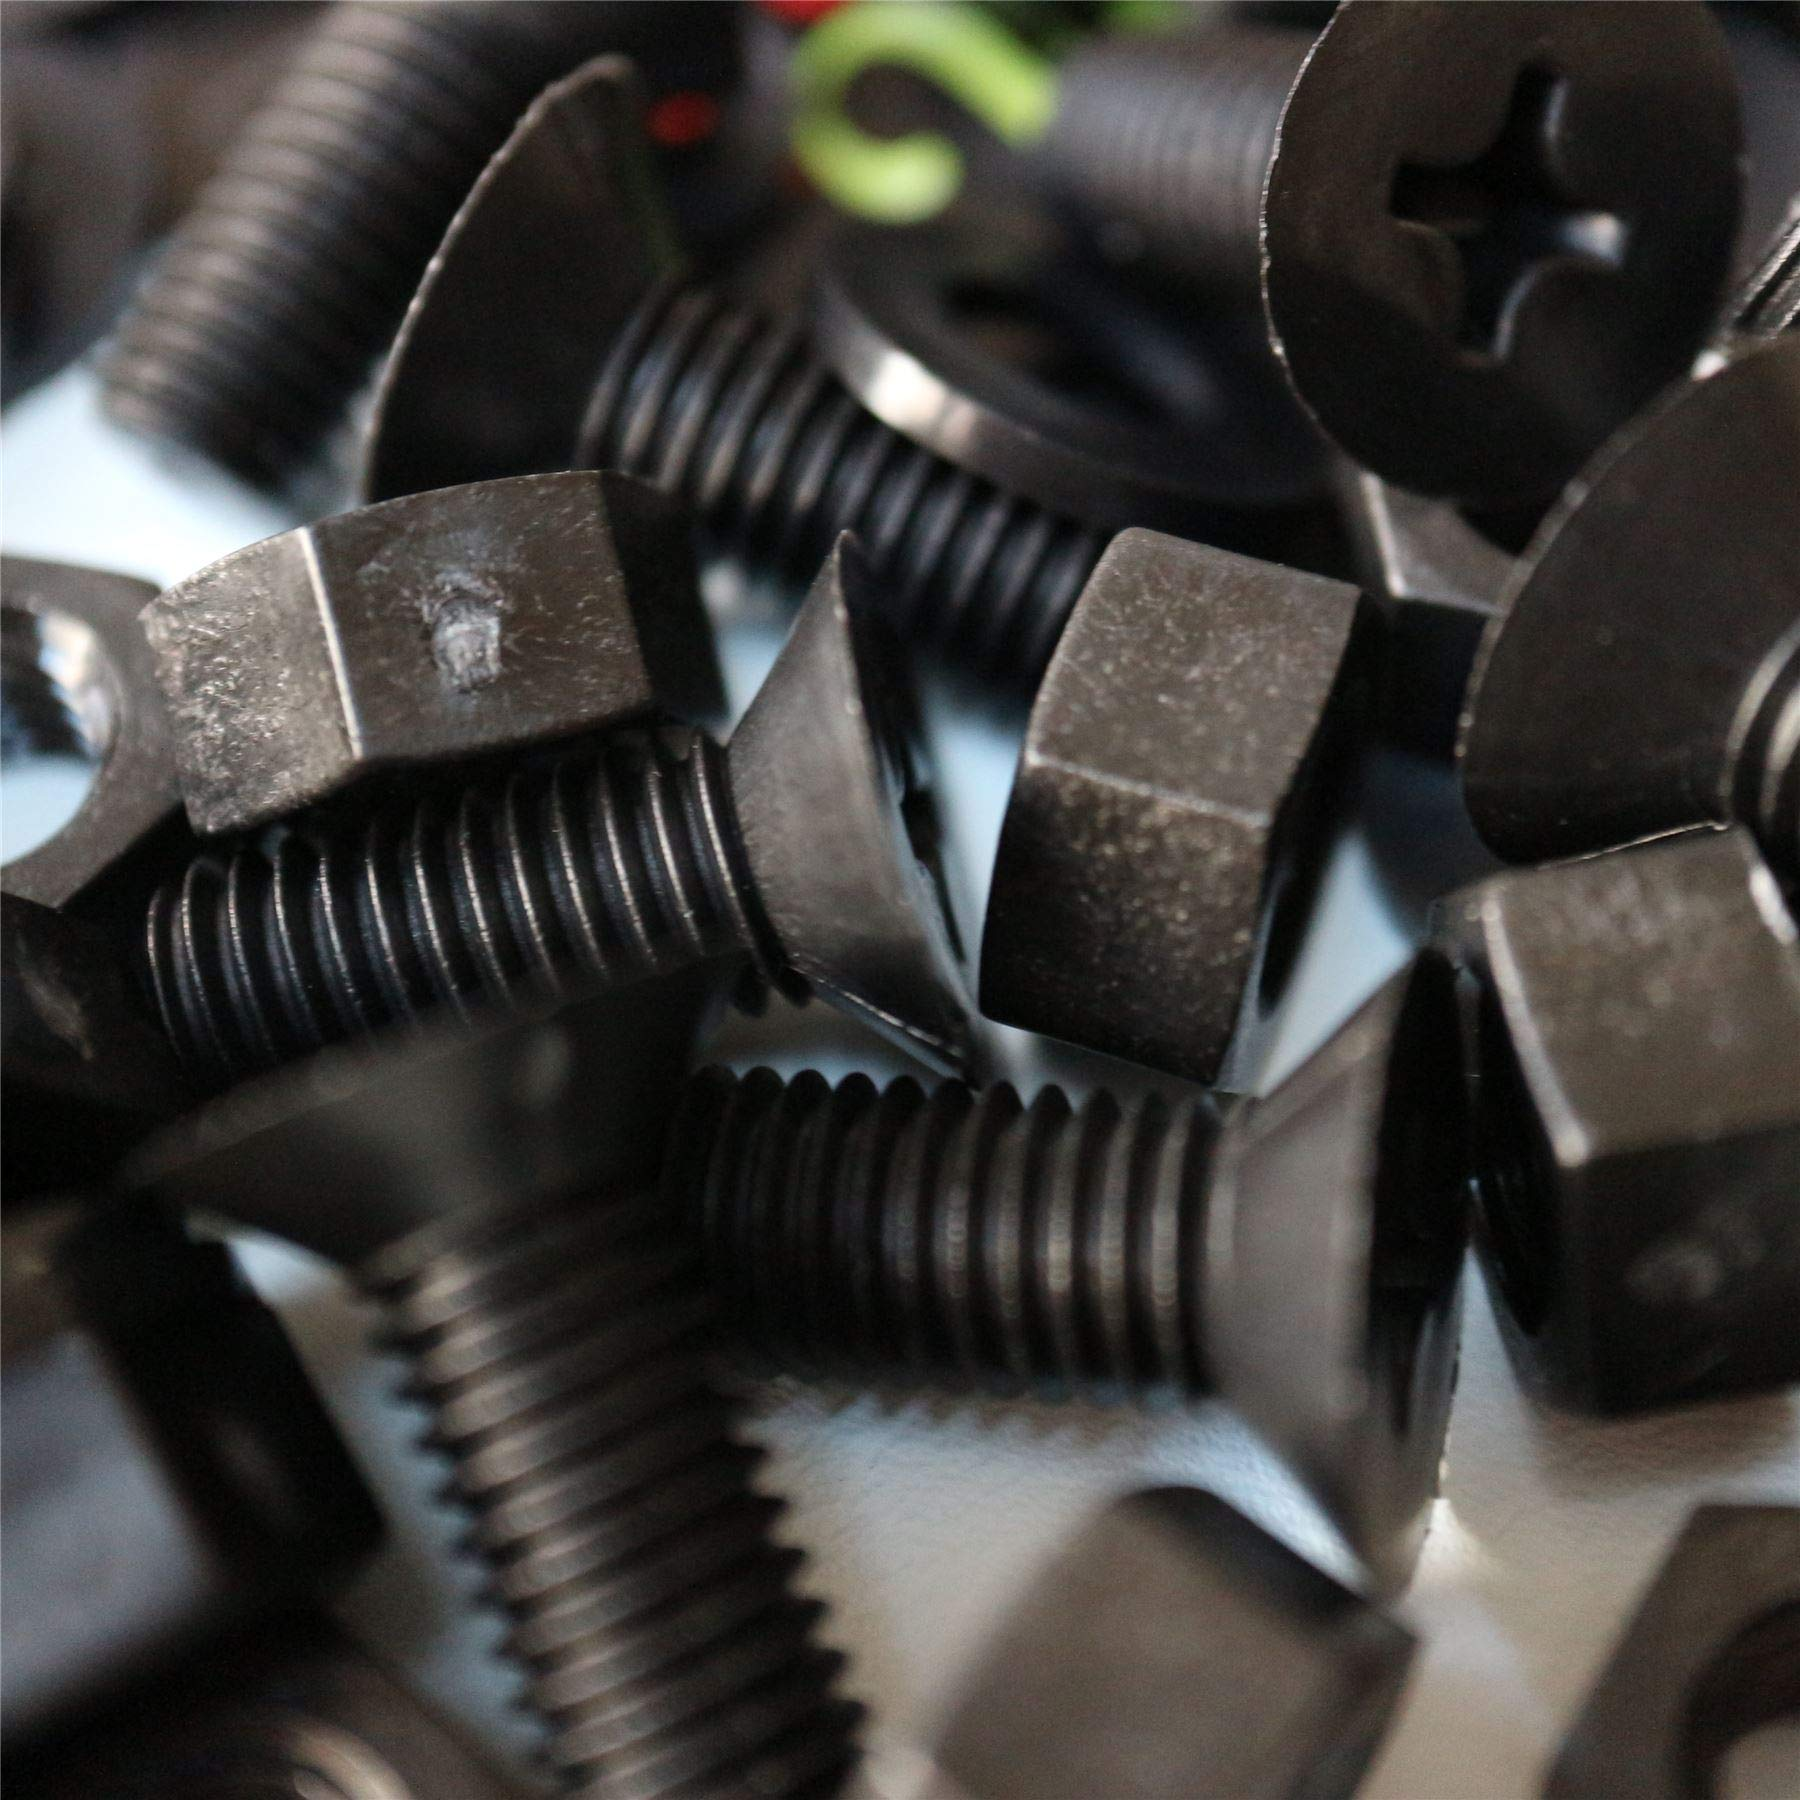 20 x Black Countersunk Screws Polypropylene (PP) Plastic Nuts and Bolts, Washers, M8 x 20mm, Acrylic, Water Resistant, Anti-Corrosion, Chemical Resistant, Electrical Insulator, Strong. 5/16 x 25/32''